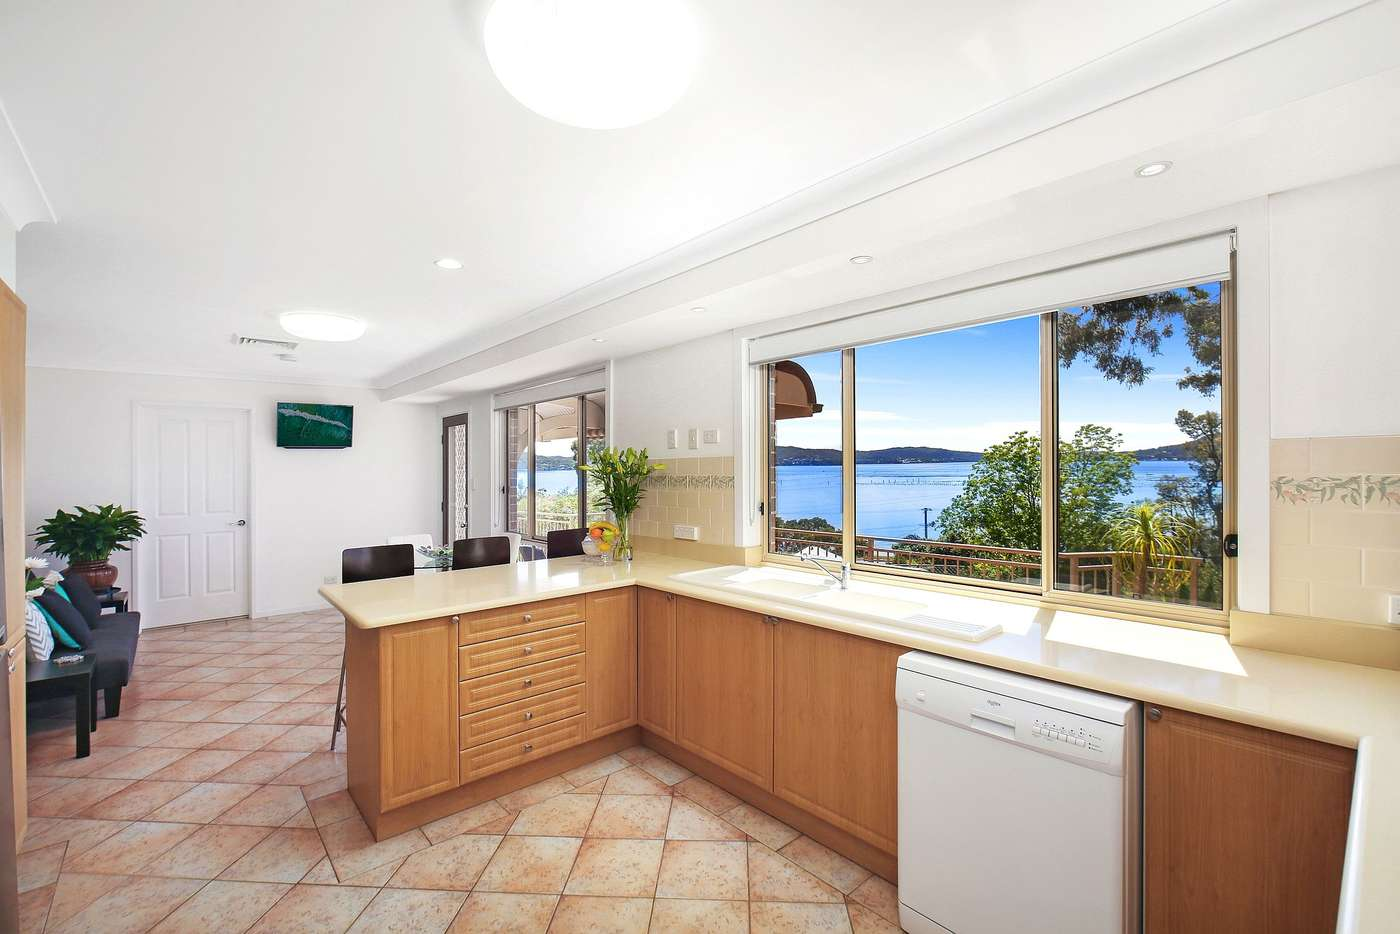 Sixth view of Homely house listing, 11 Johns Road, Koolewong NSW 2256